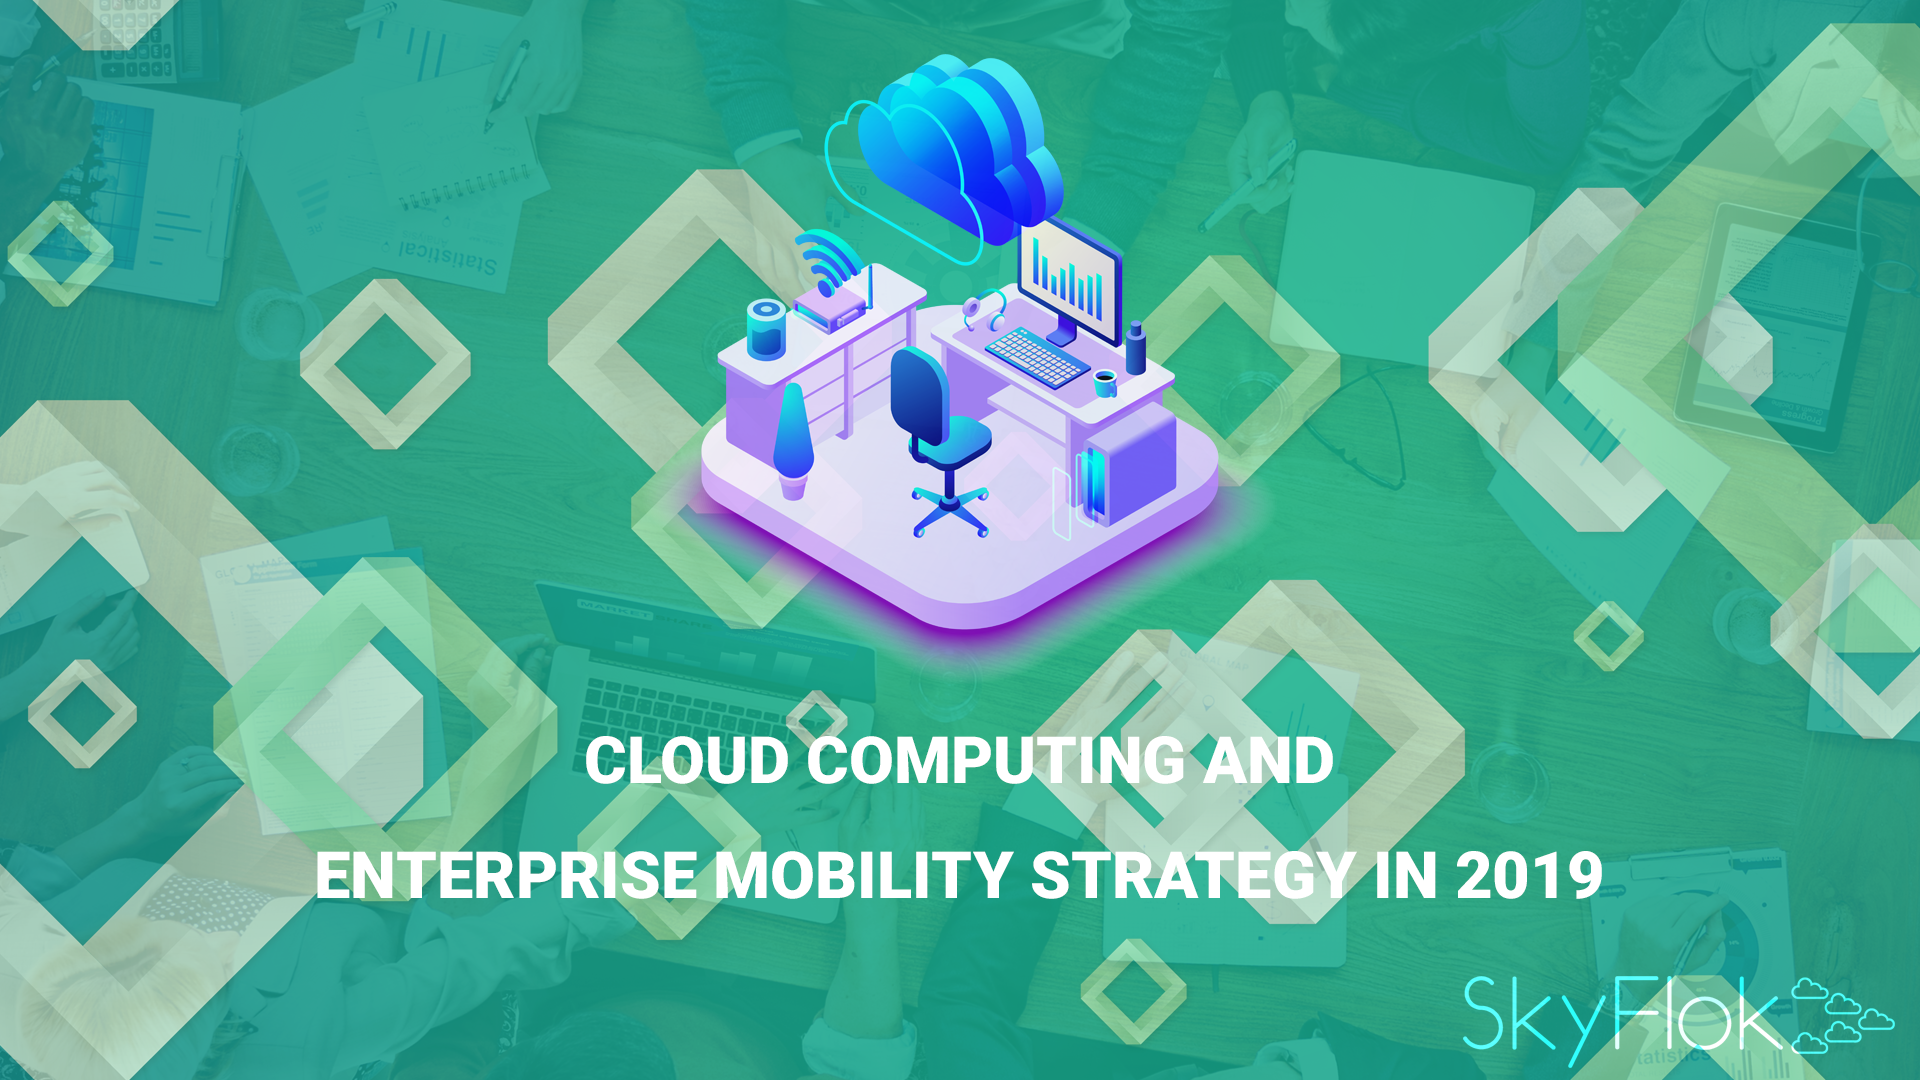 Cloud computing and enterprise mobility strategy in 2019